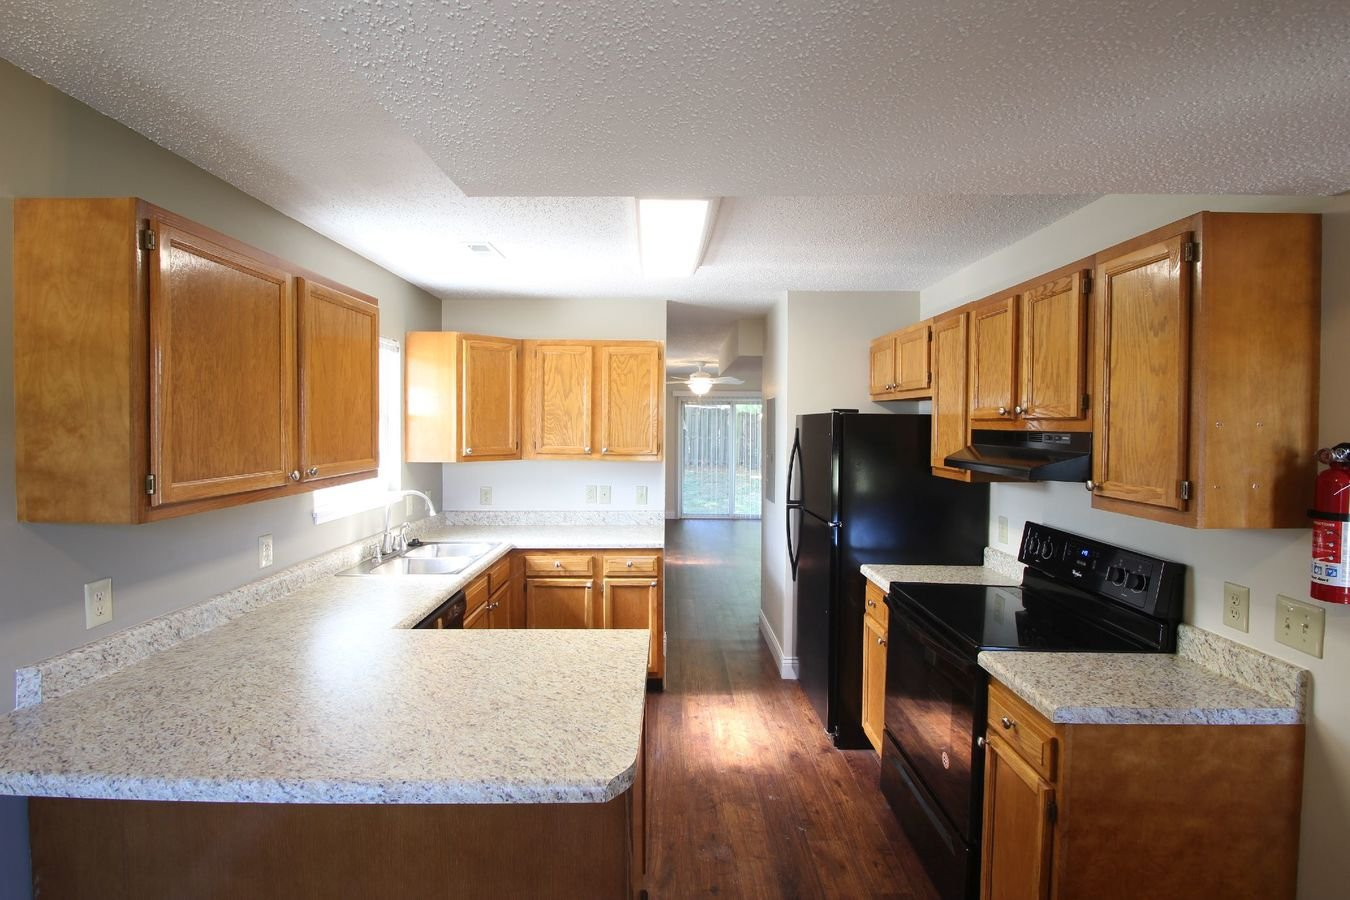 3 Bedrooms 3 Bathrooms Apartment for rent at Summerhouse At Indiana in Bloomington, IN